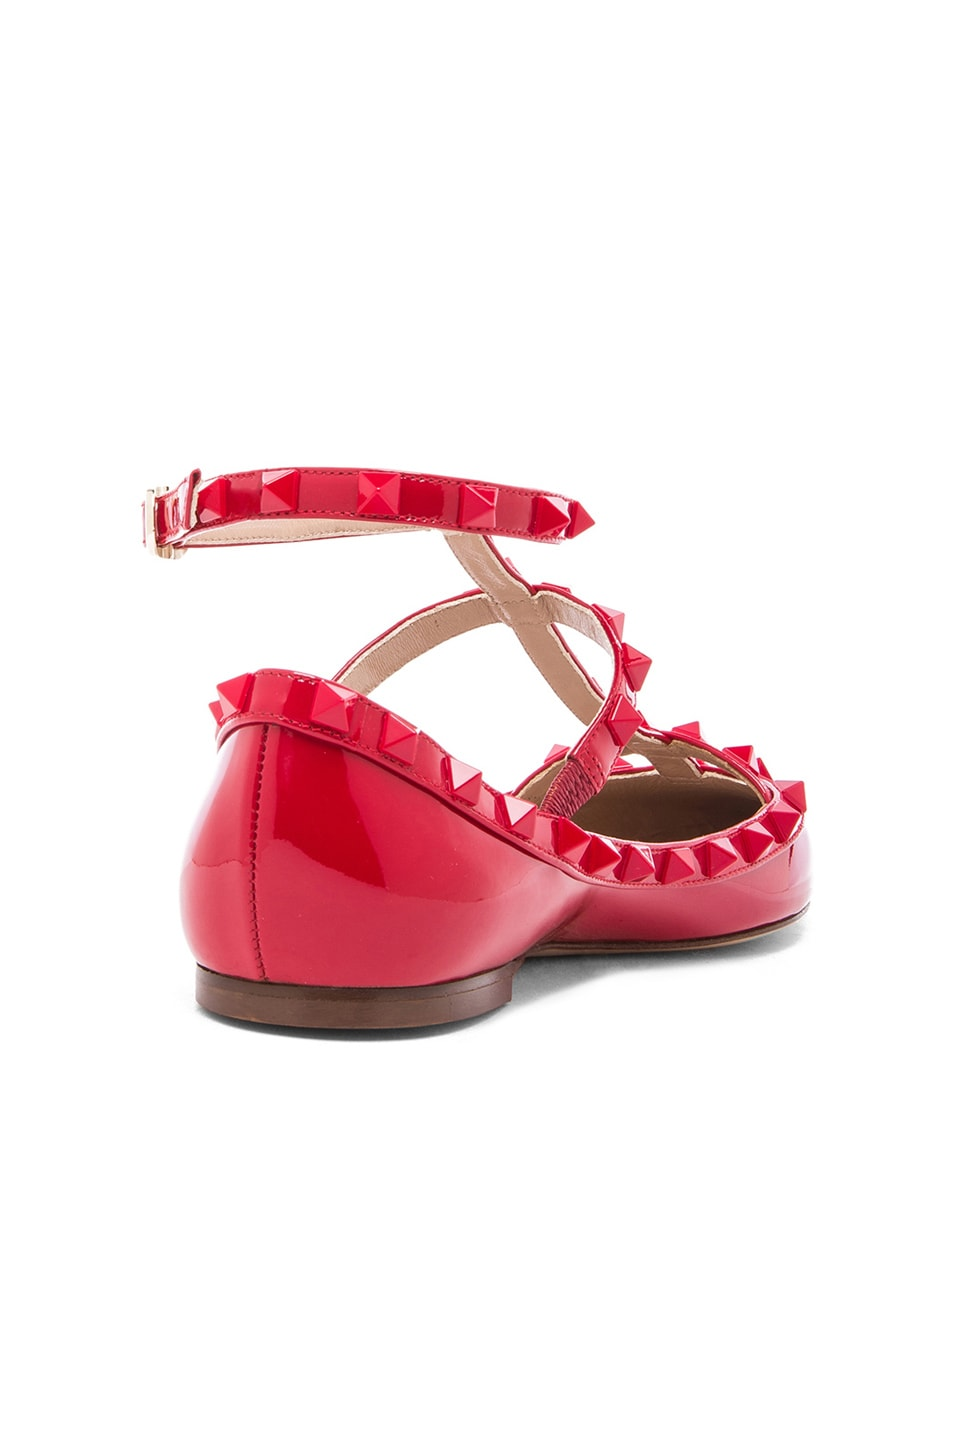 Image 3 of Valentino Rockstud Punkouture Patent Cage Flats in Red